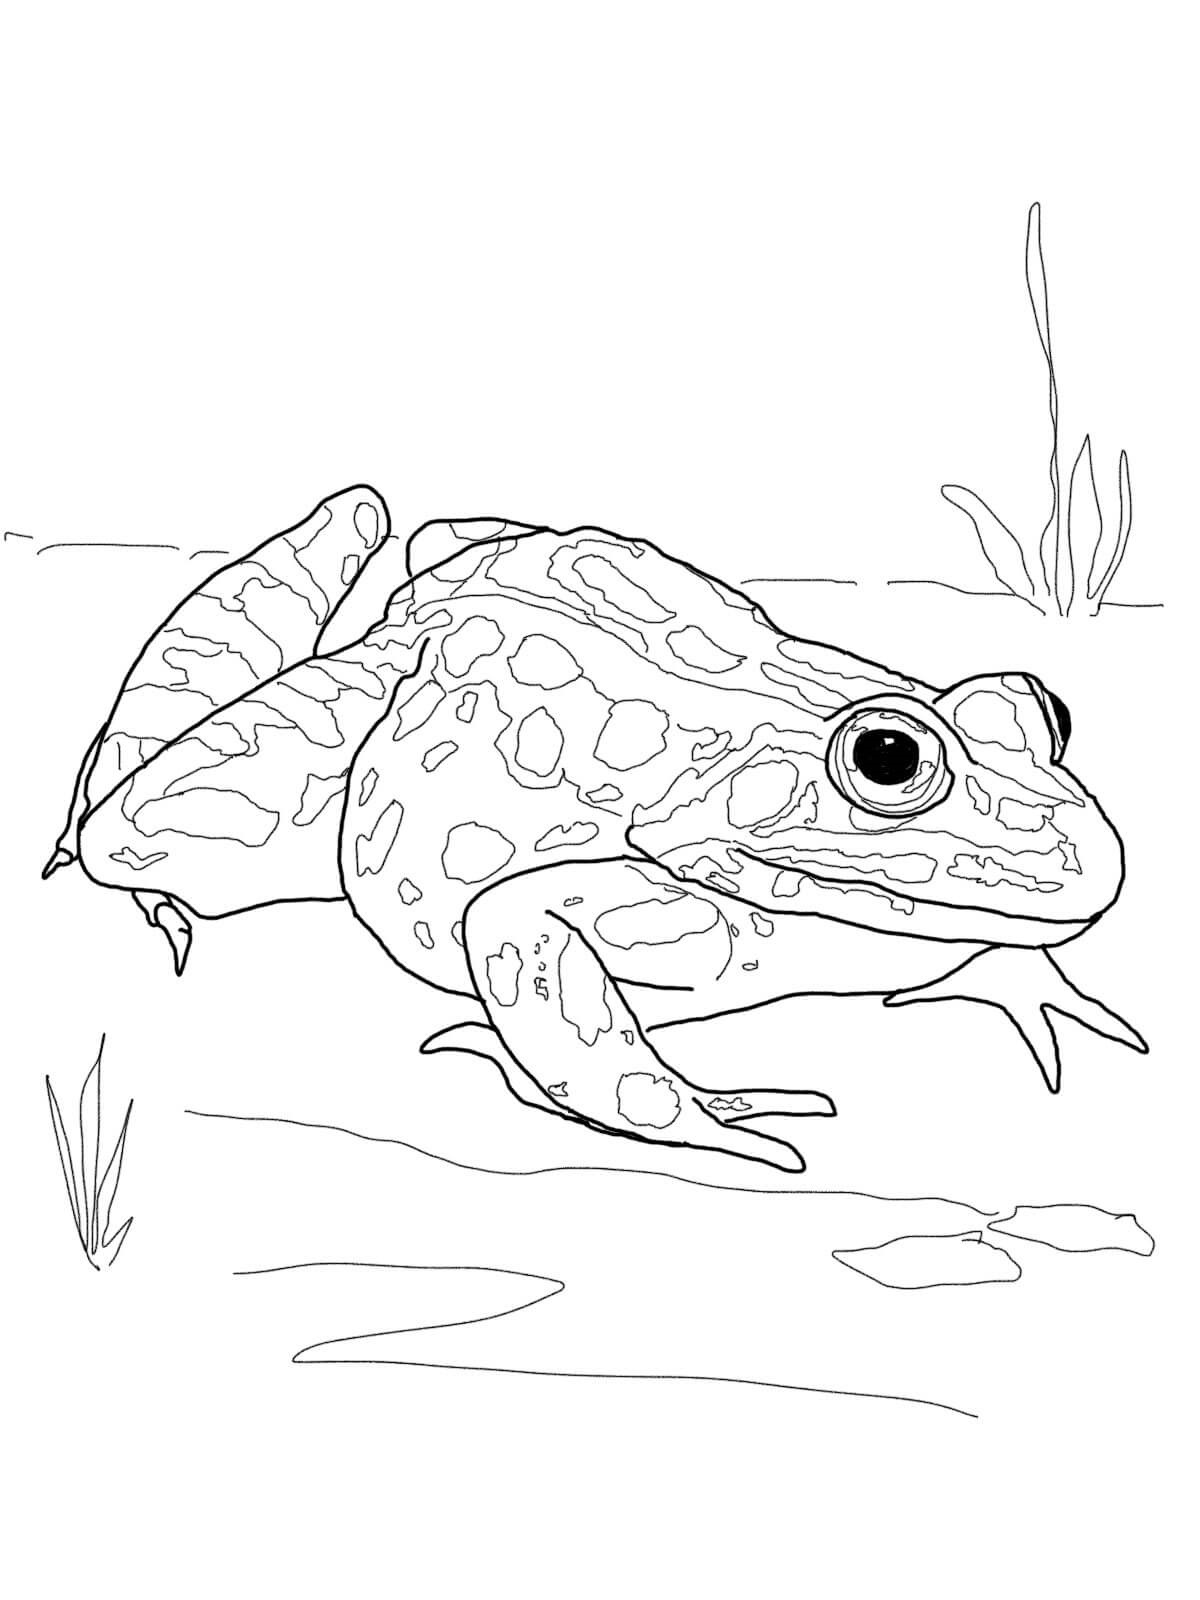 Printable frog coloring pages for kids learning printable for Free printable frog coloring pages